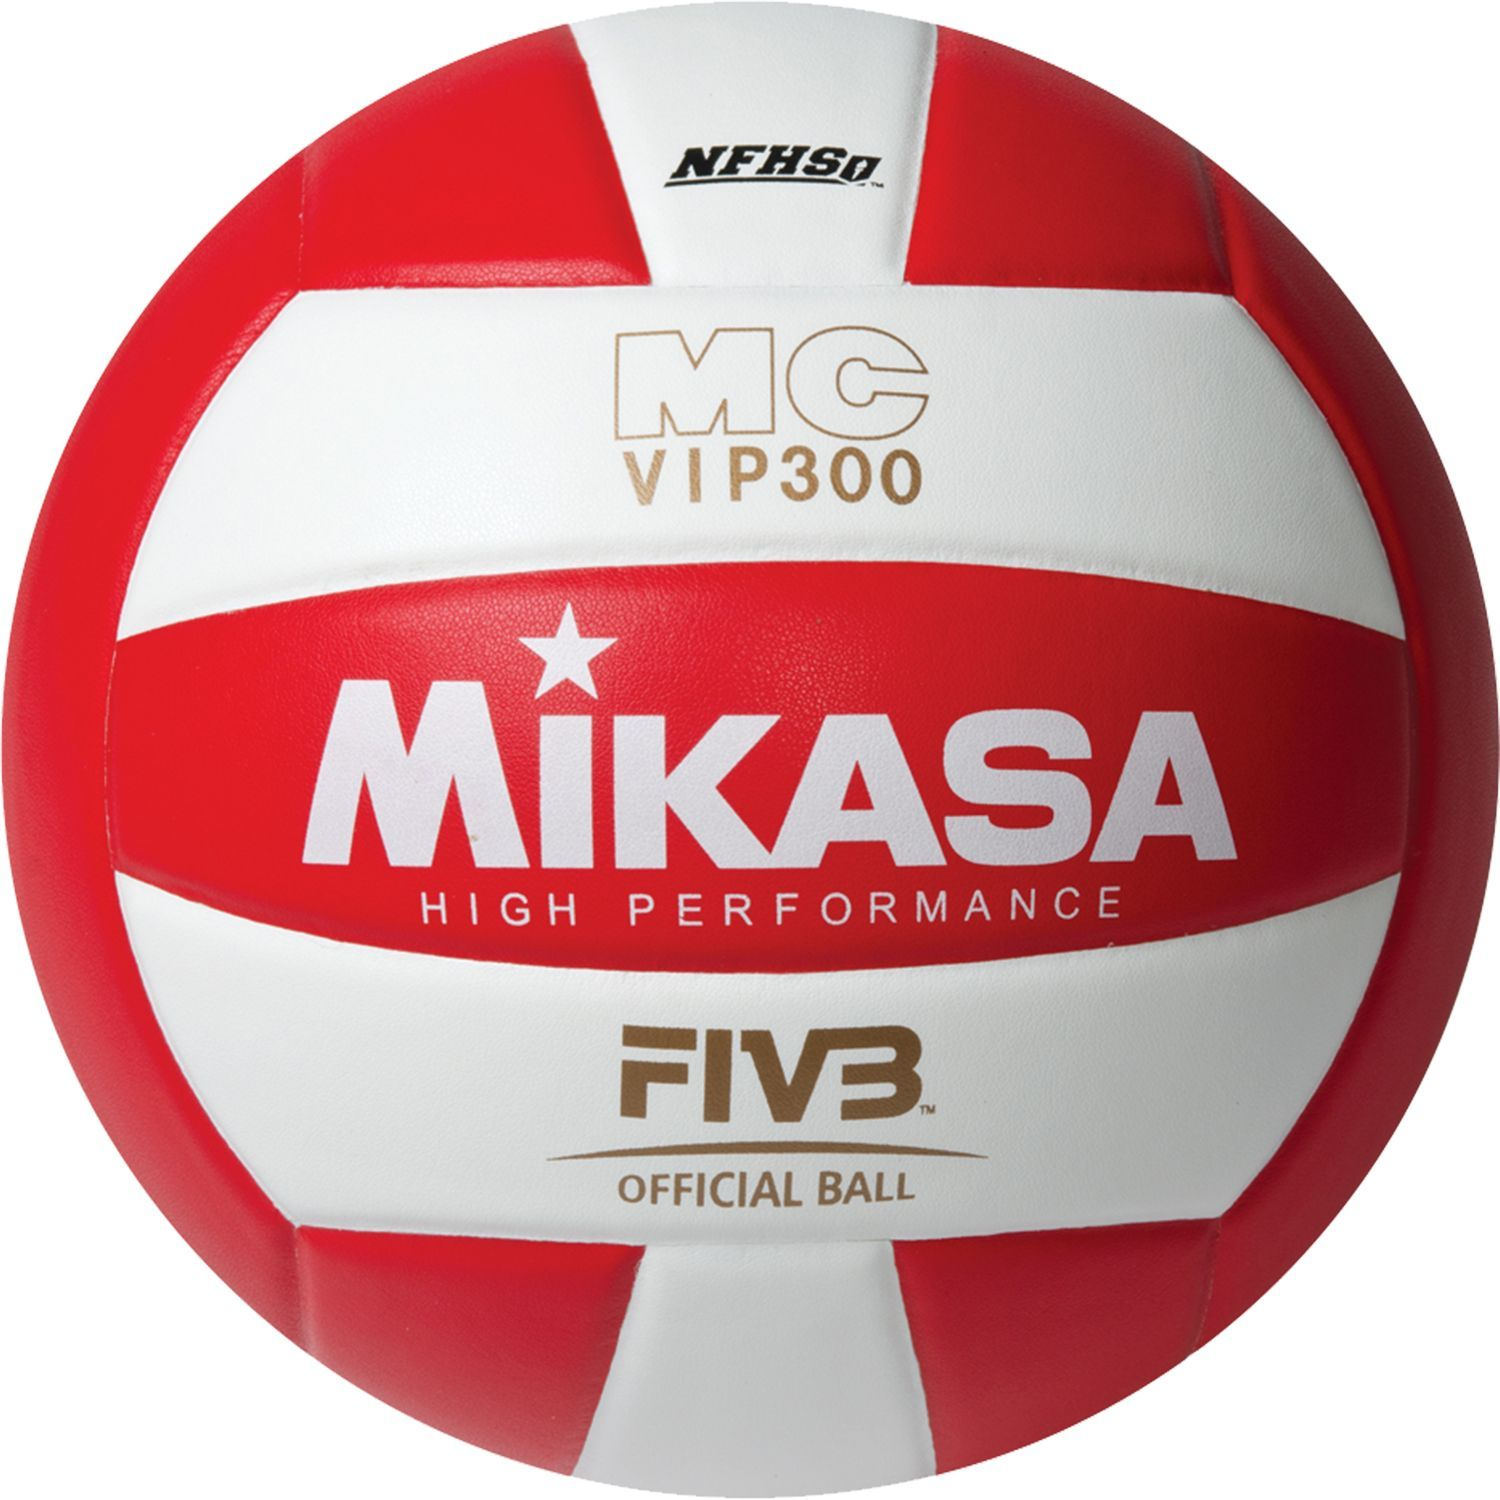 Mikasa High Performance Indoor Volleyball In 2020 Indoor Volleyball Mikasa Volleyball